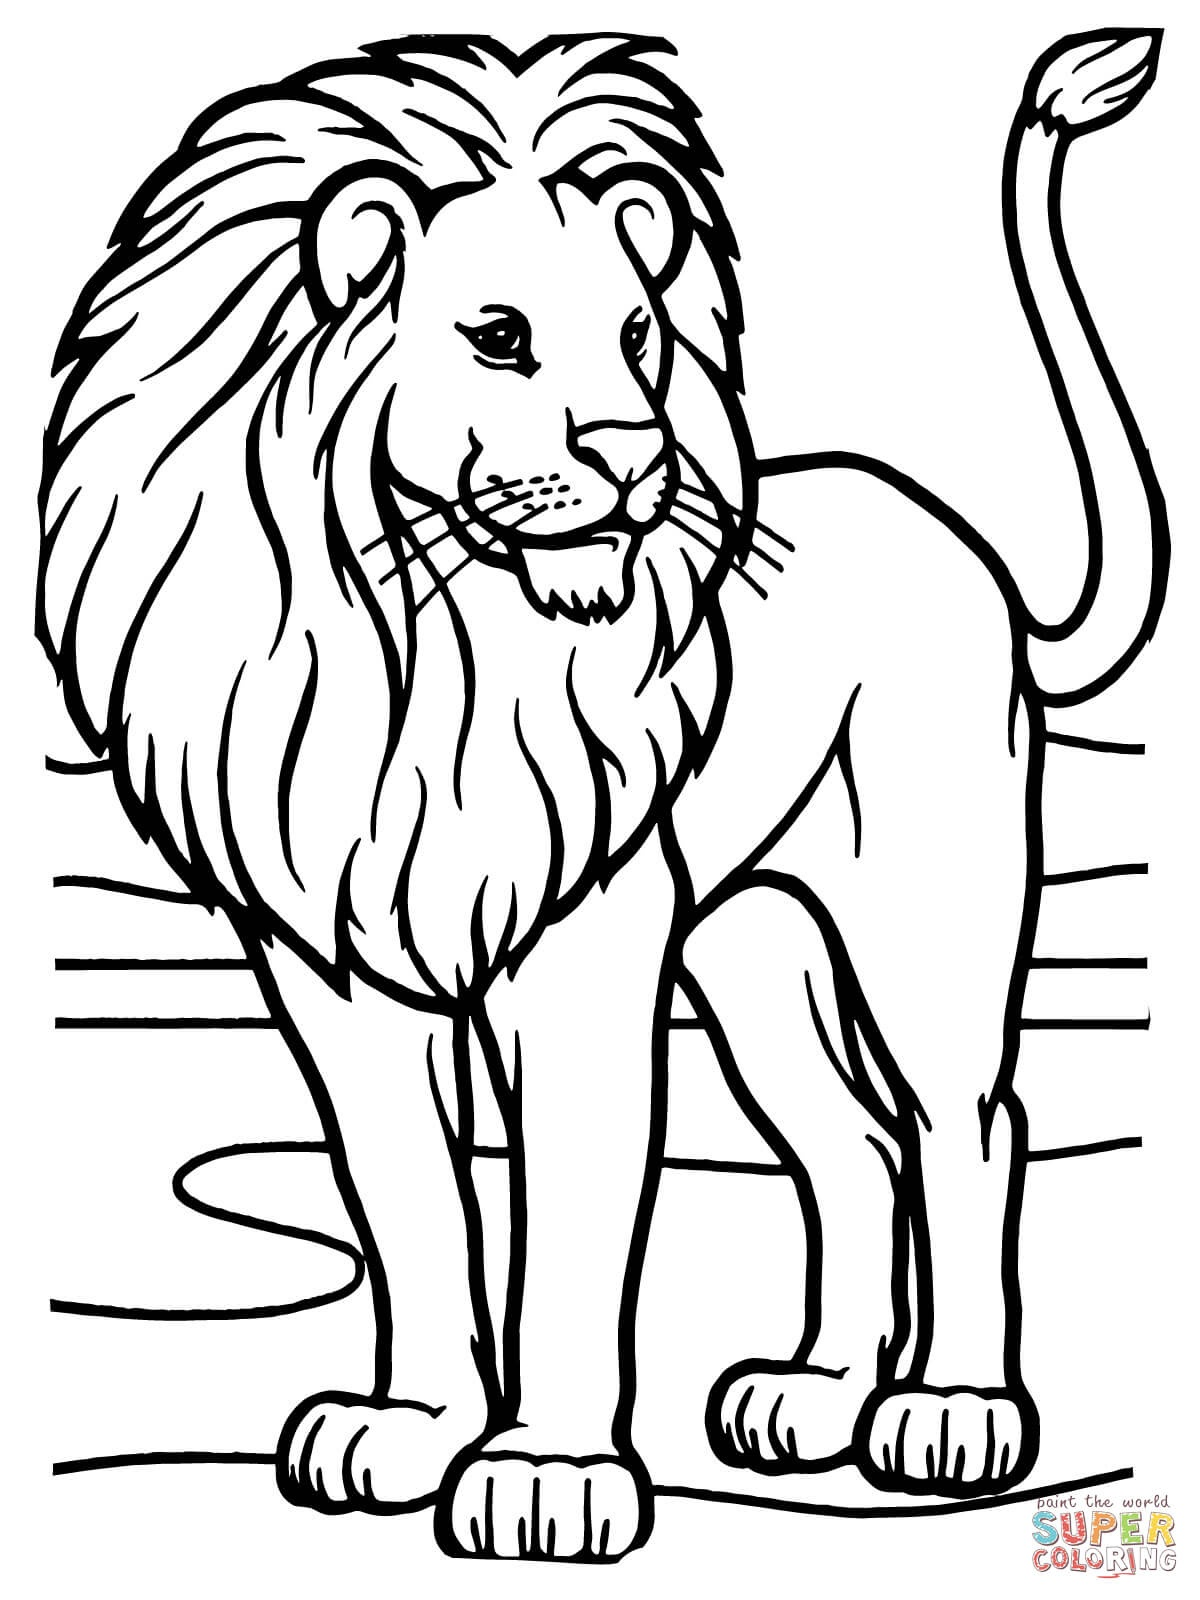 Male African Lion Coloring Page   Free Printable Coloring Pages - Free Printable Picture Of A Lion